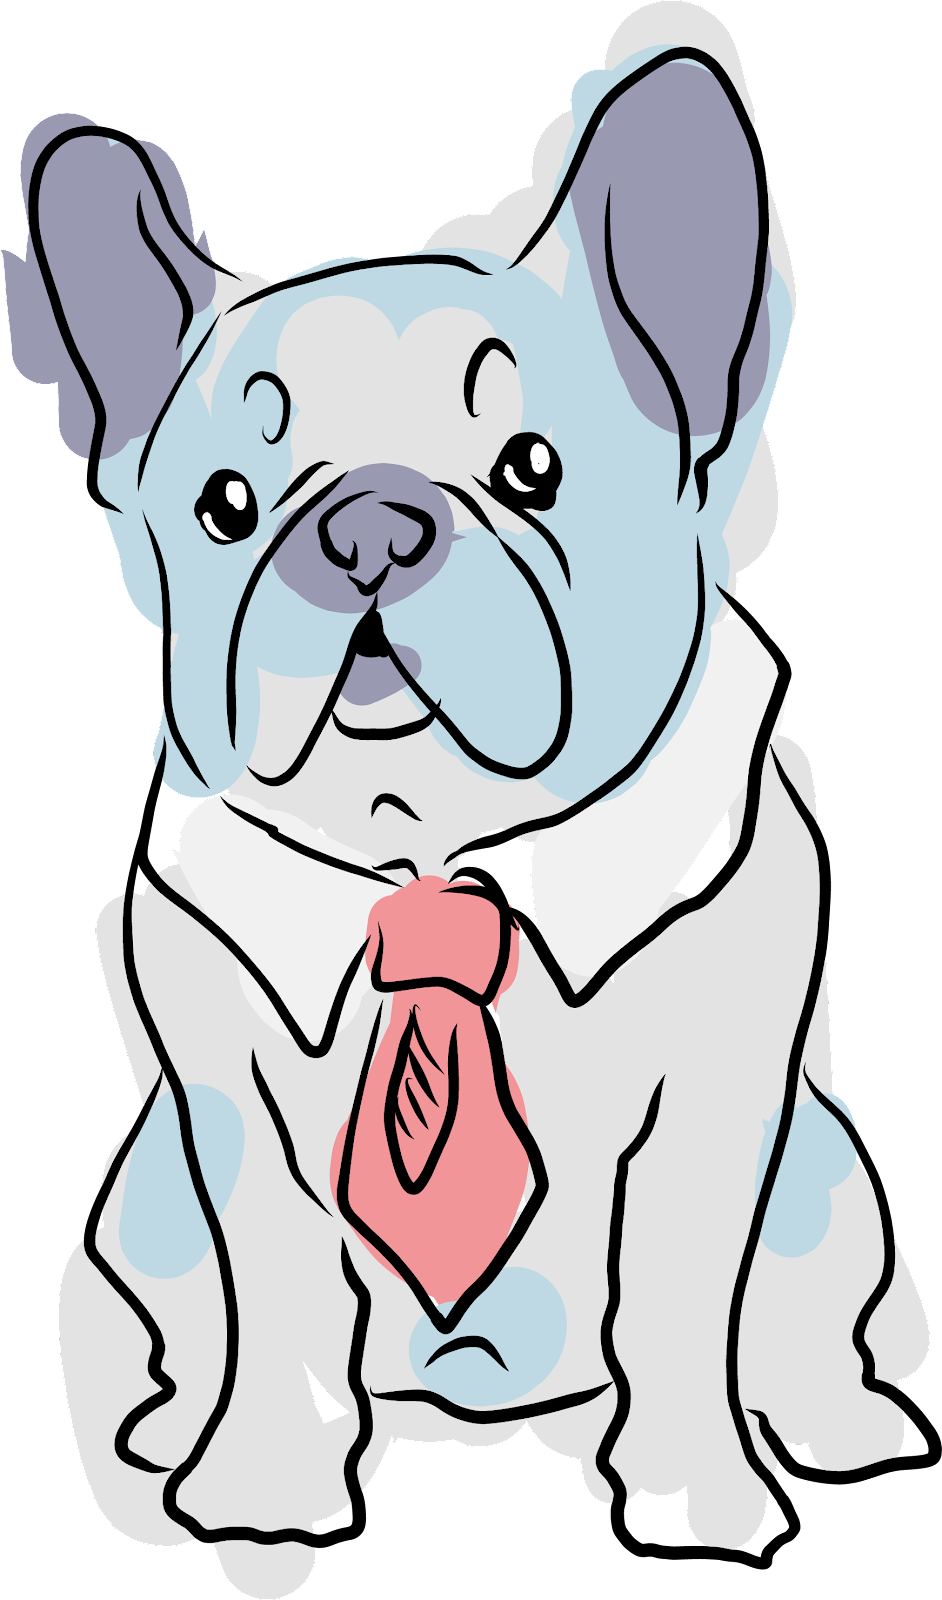 illustration of a French Bulldog wearing a tie